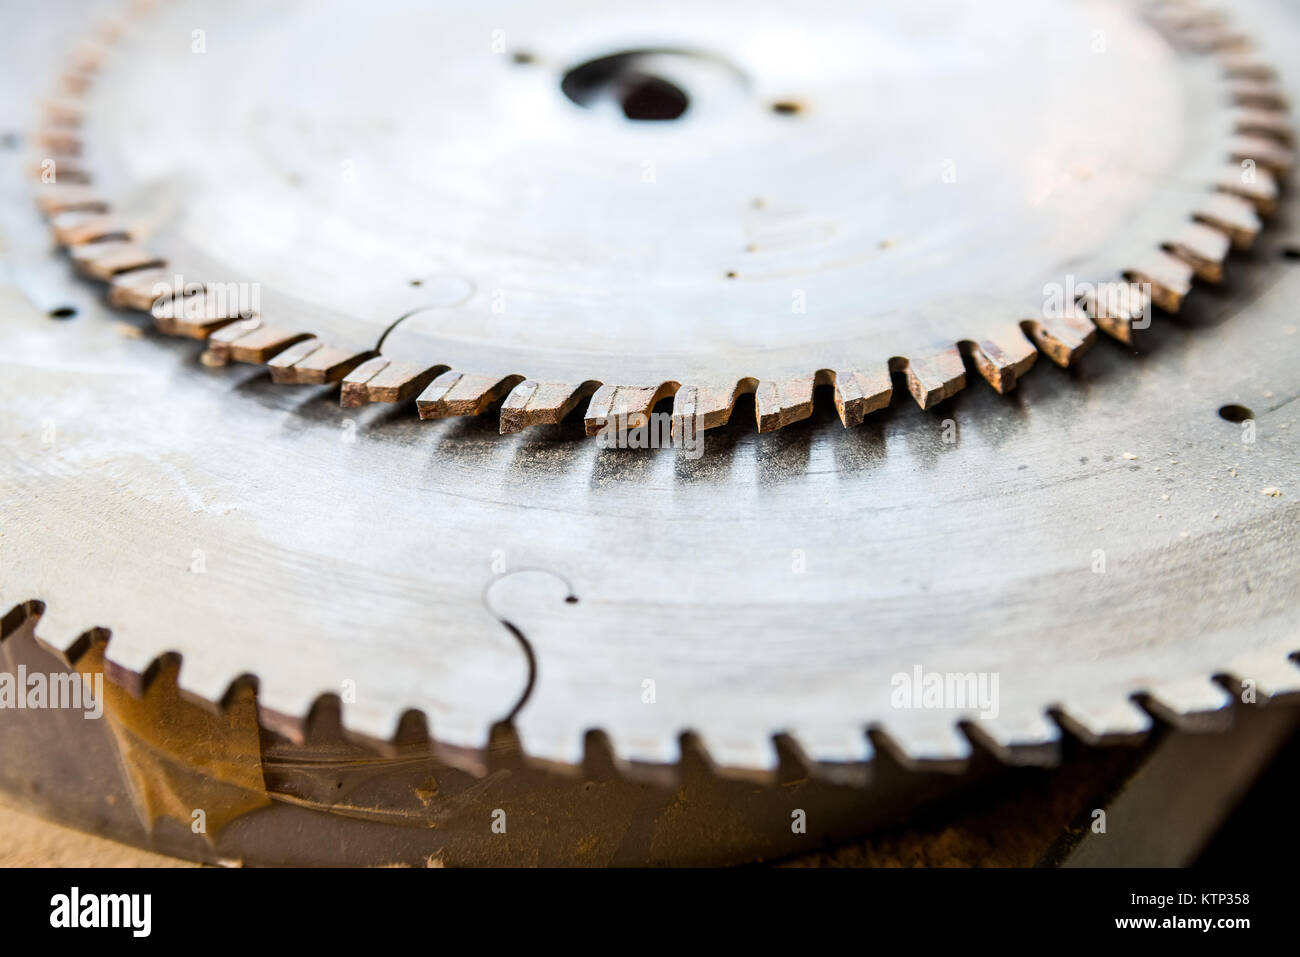 Close up image of metal circular saw attachment for woodworking - Stock Image